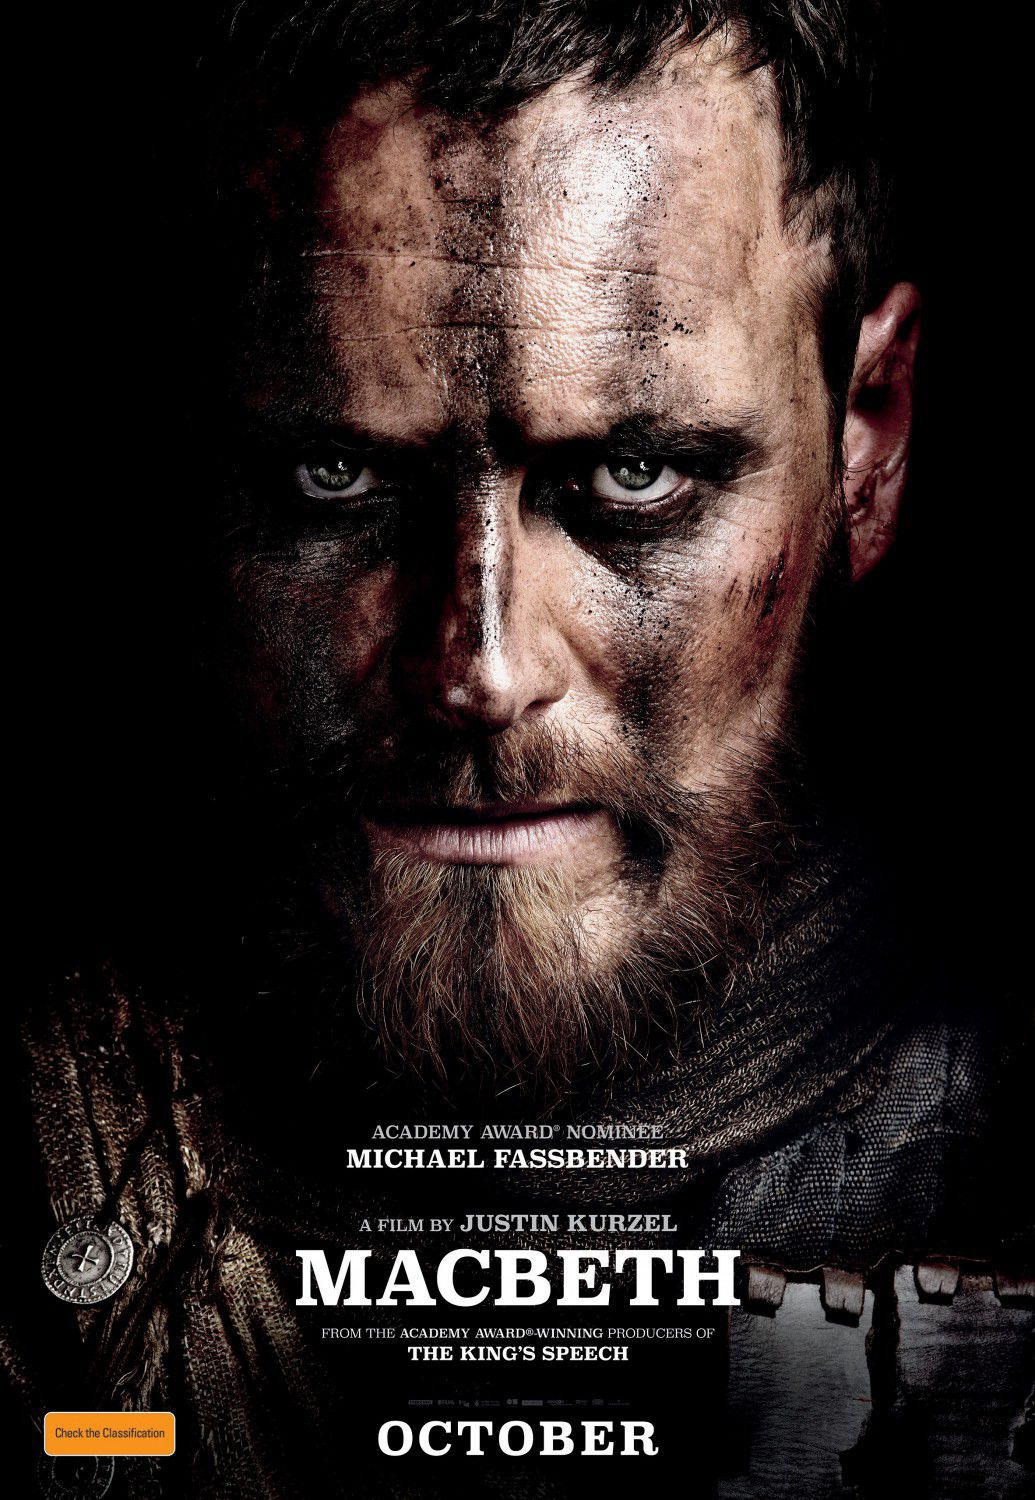 Macbeth (2015) - Michael Fassbender - film by Justin Kurzel - poster